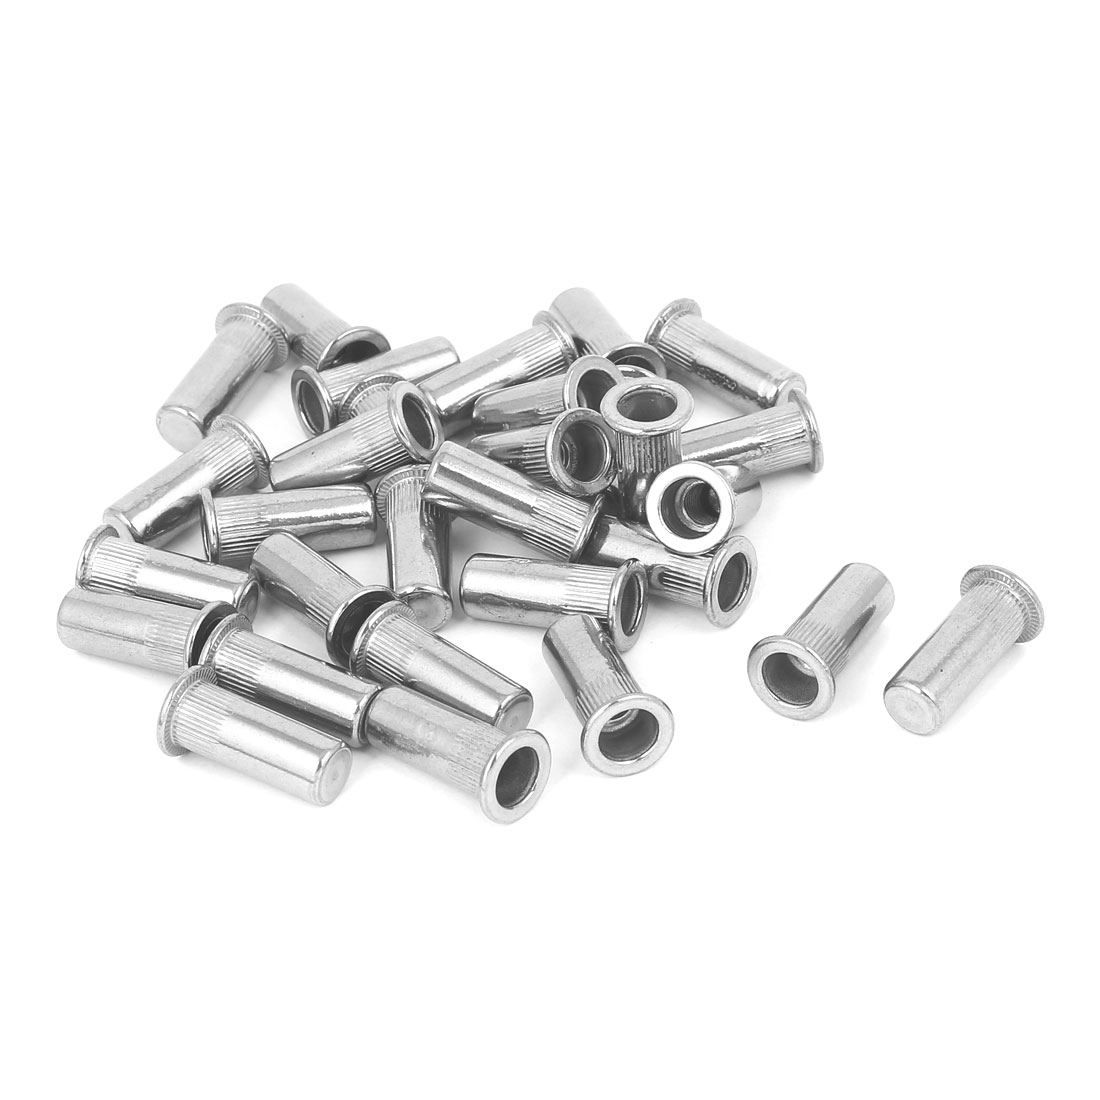 M6x23mm 304 Stainless Steel Straight Knurled Closed End Rivet Nut Fastener 30pcs